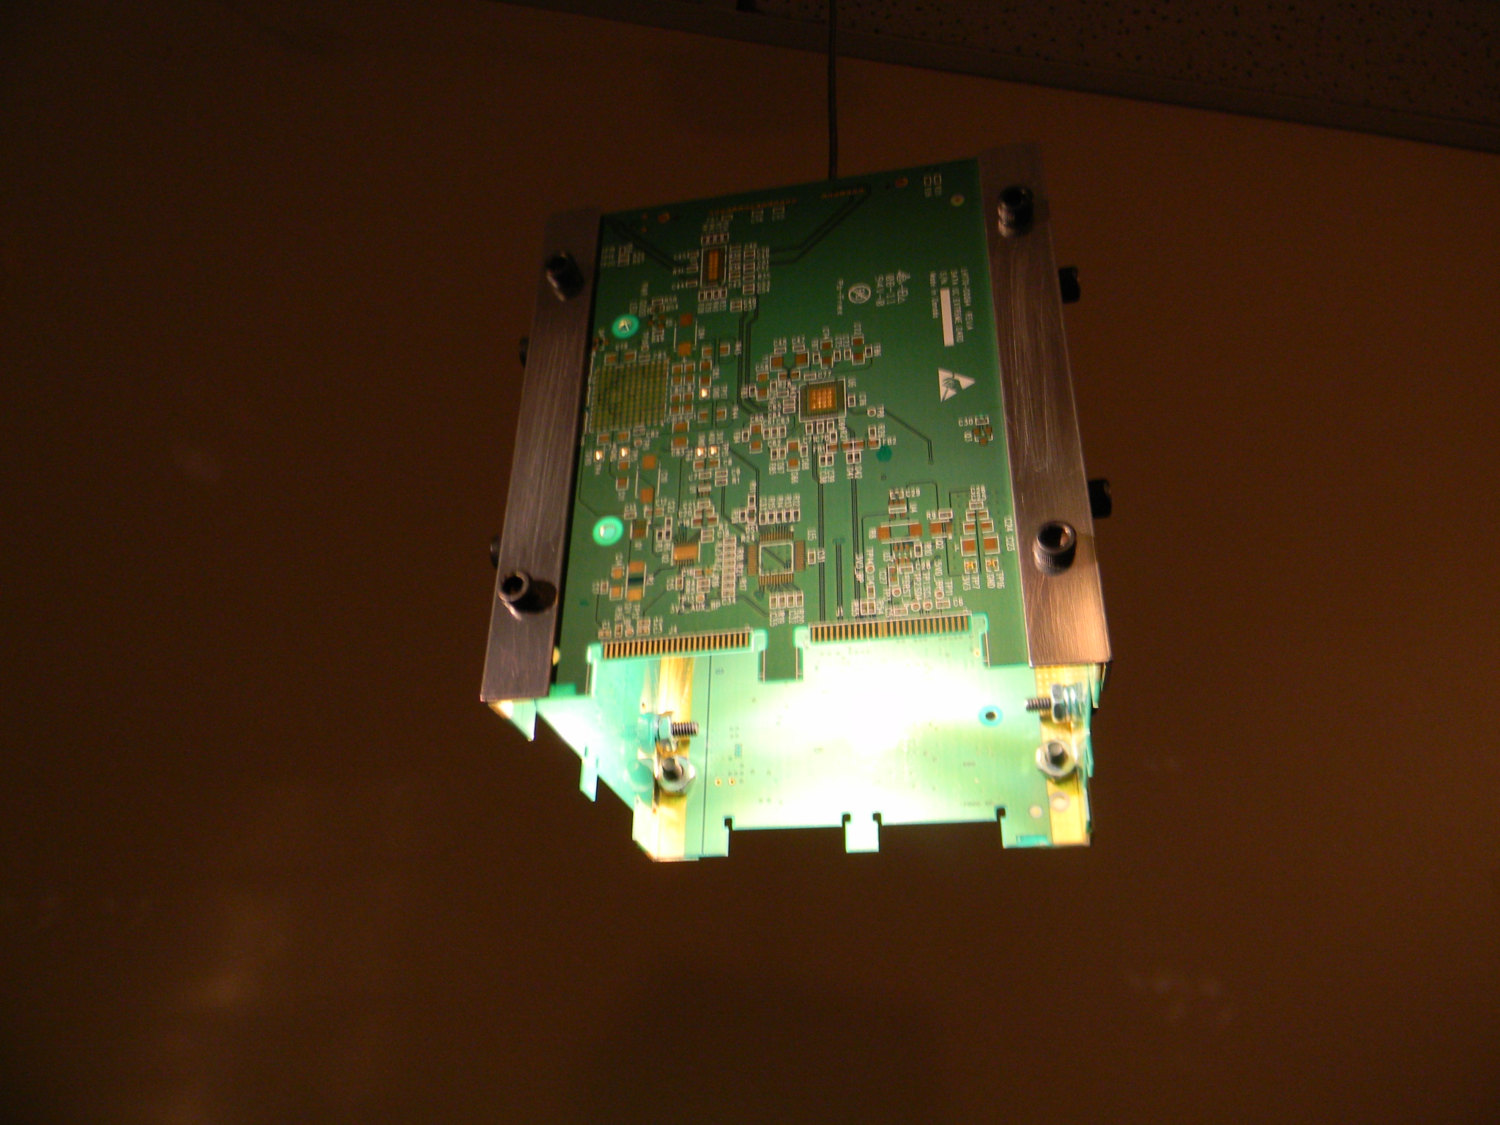 Creative upcycling  artist and customer,  Albin Wandeler  has an eye for the unconventional and handcrafted this beautiful circuit board pendant lamp, making brilliant use out of what otherwise would have been destined for the shredder.